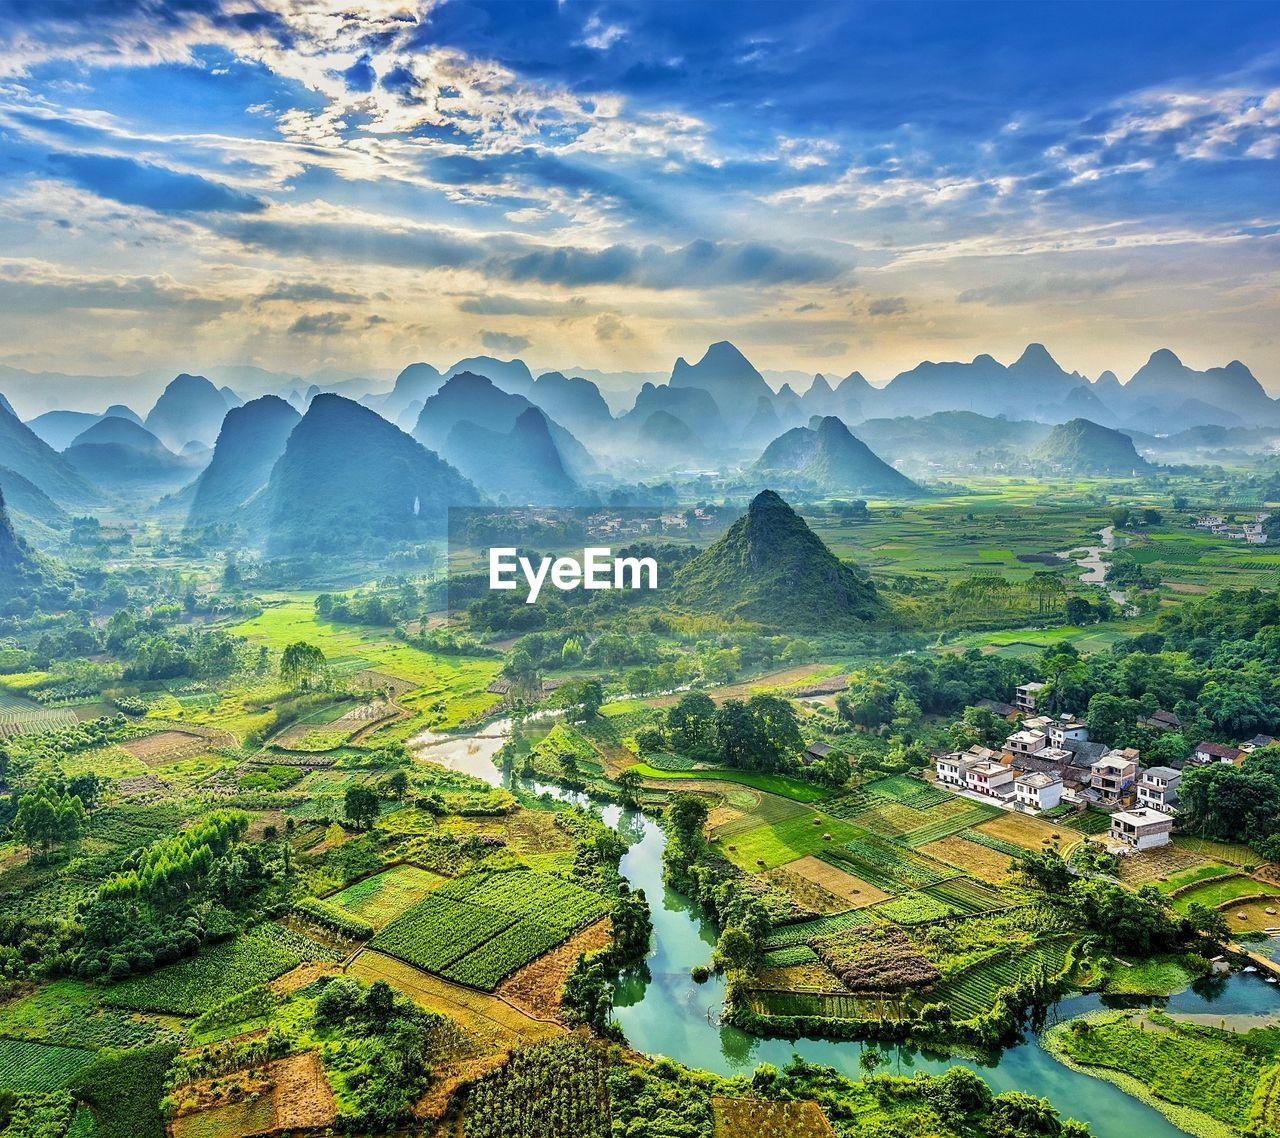 beauty in nature, agriculture, tranquil scene, scenics, nature, landscape, sky, farm, tranquility, field, cultivated land, rural scene, cloud - sky, idyllic, mountain, no people, high angle view, outdoors, rice paddy, patchwork landscape, tree, terraced field, water, day